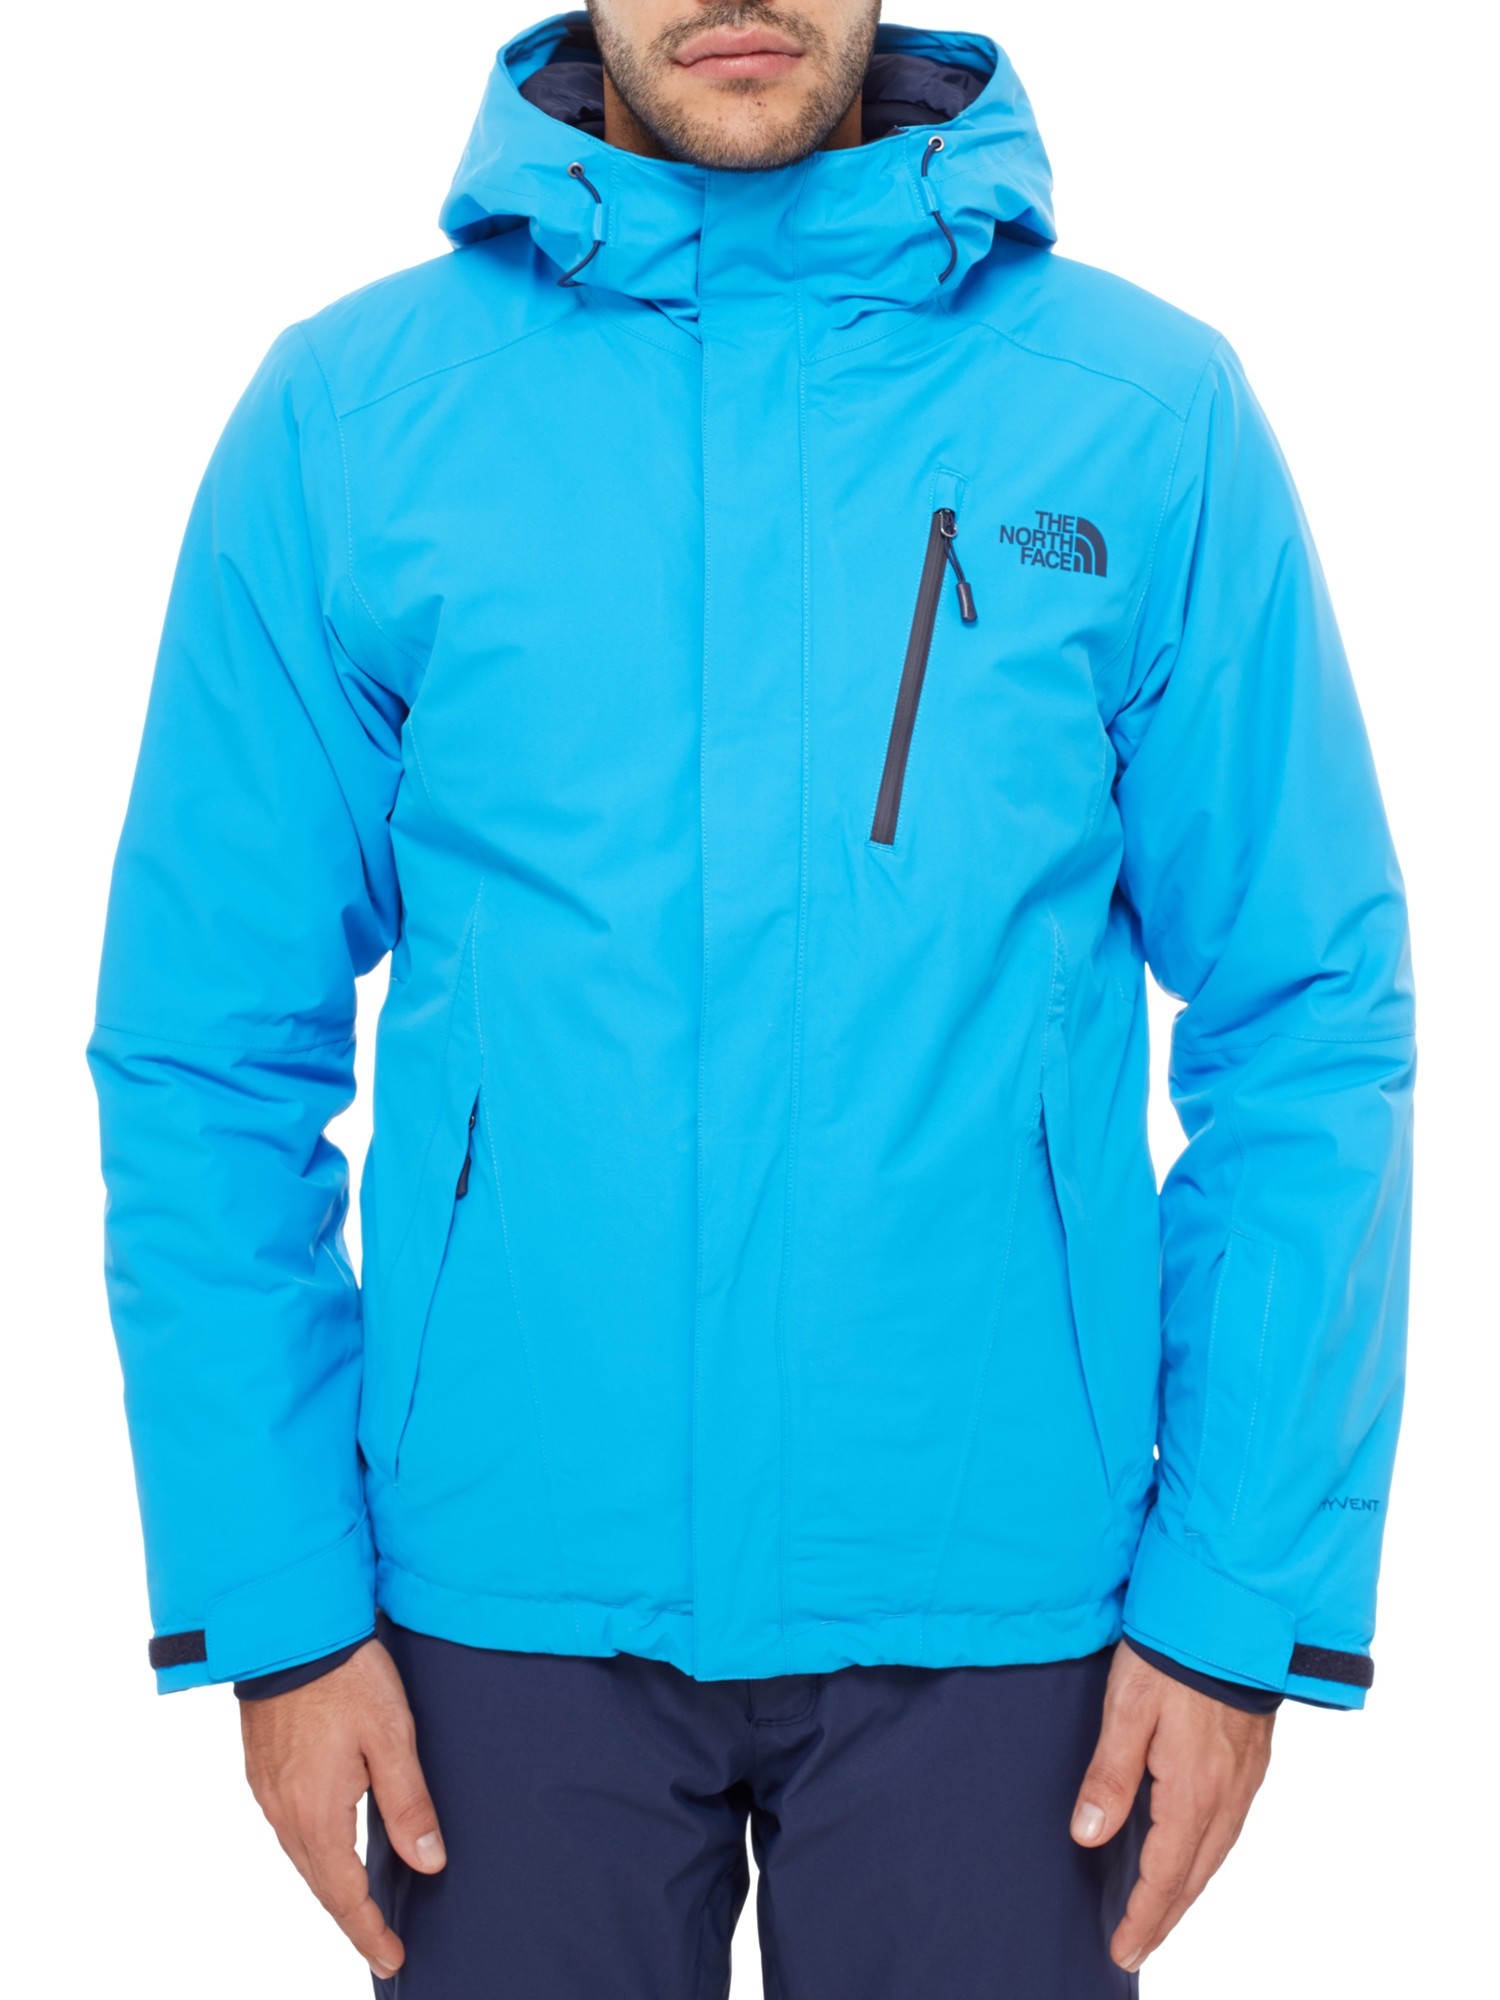 c81914e36822 The North Face Descendit Men s Jacket- Hyper Blue - Mega Ski